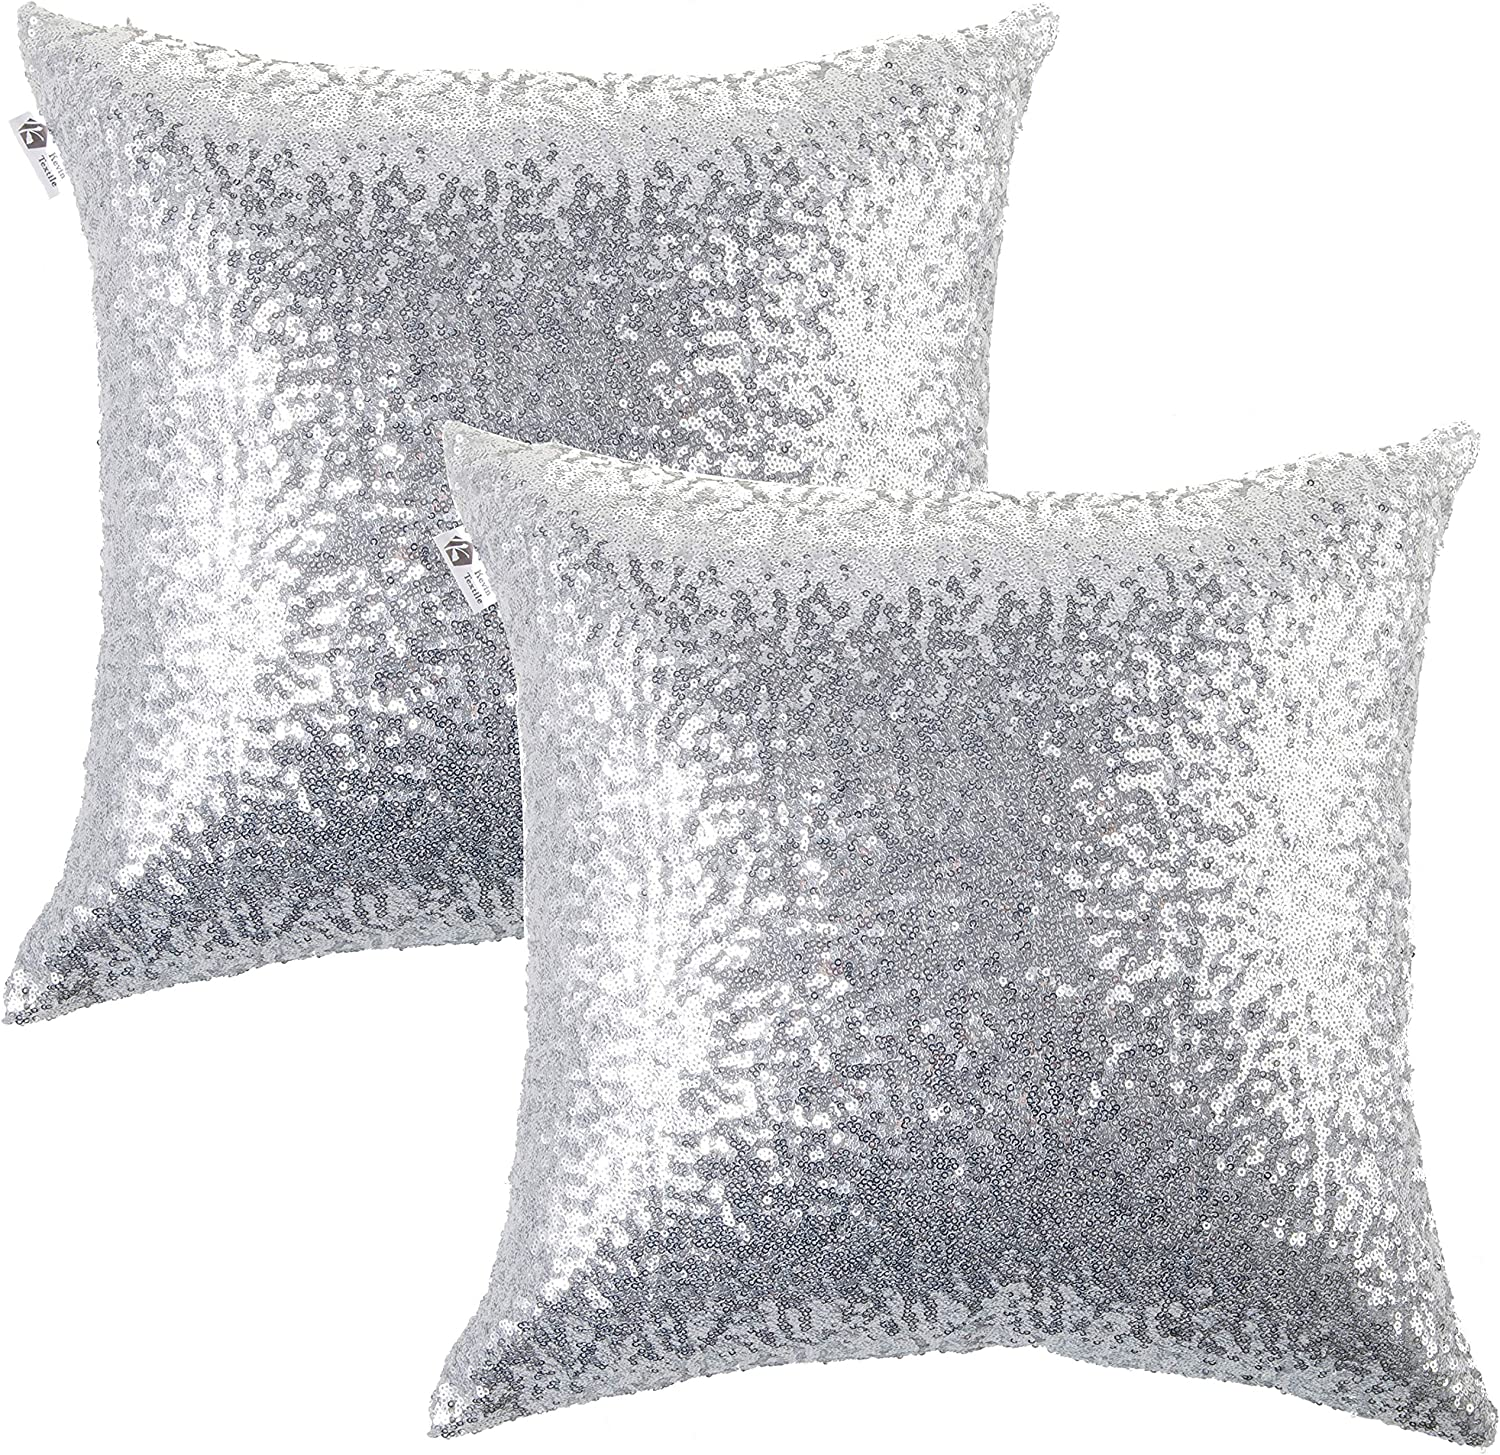 Kevin Textile Decorative Glitzy Sequin & Comfy Satin Solid Throw Pillow Cover Sham 18 Inch Square Pillow Case, Hidden Zipper Design, (2 Packs,Silver)